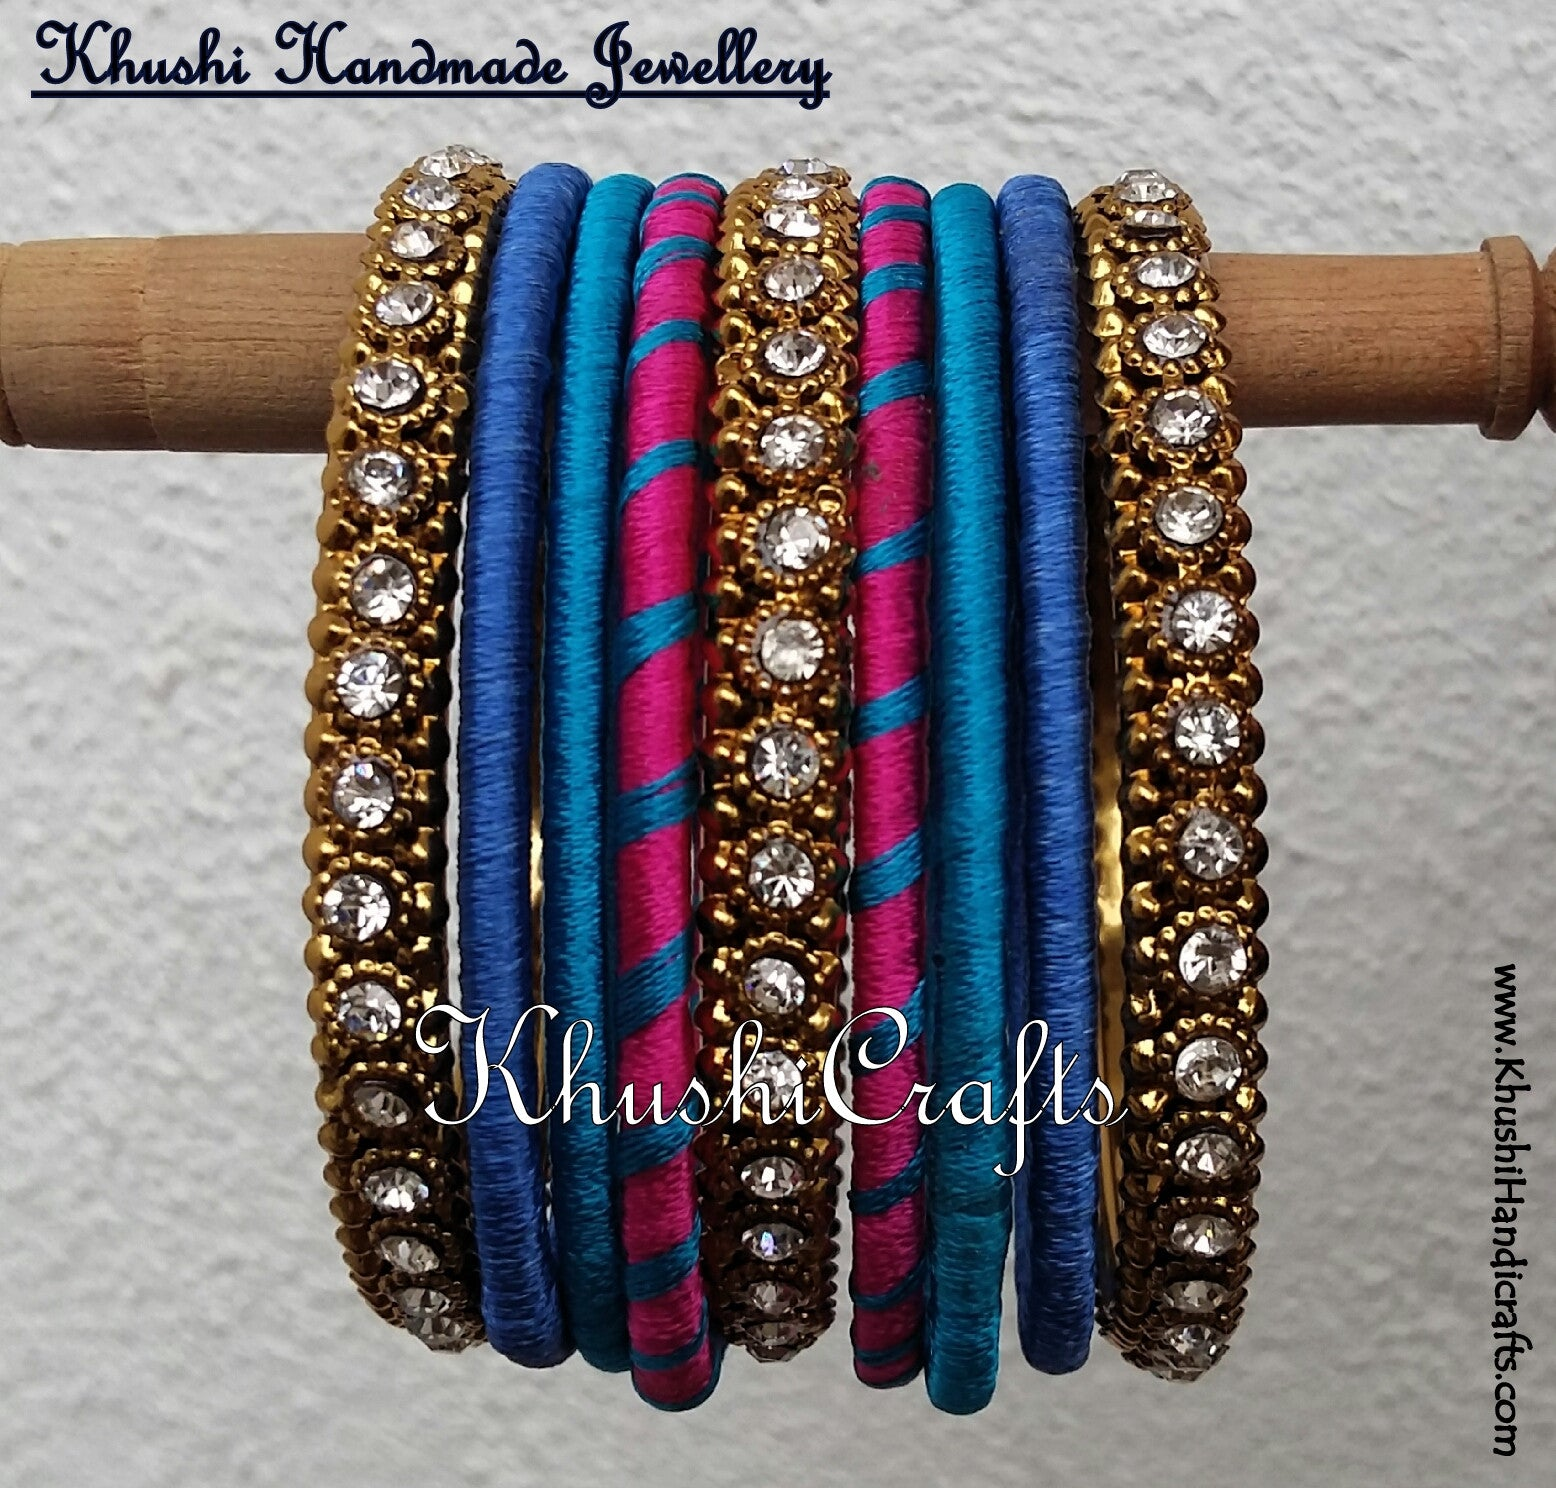 Handmade Stylish Silk Bangles in Pink and shades of Blue - Khushi Handmade Jewellery